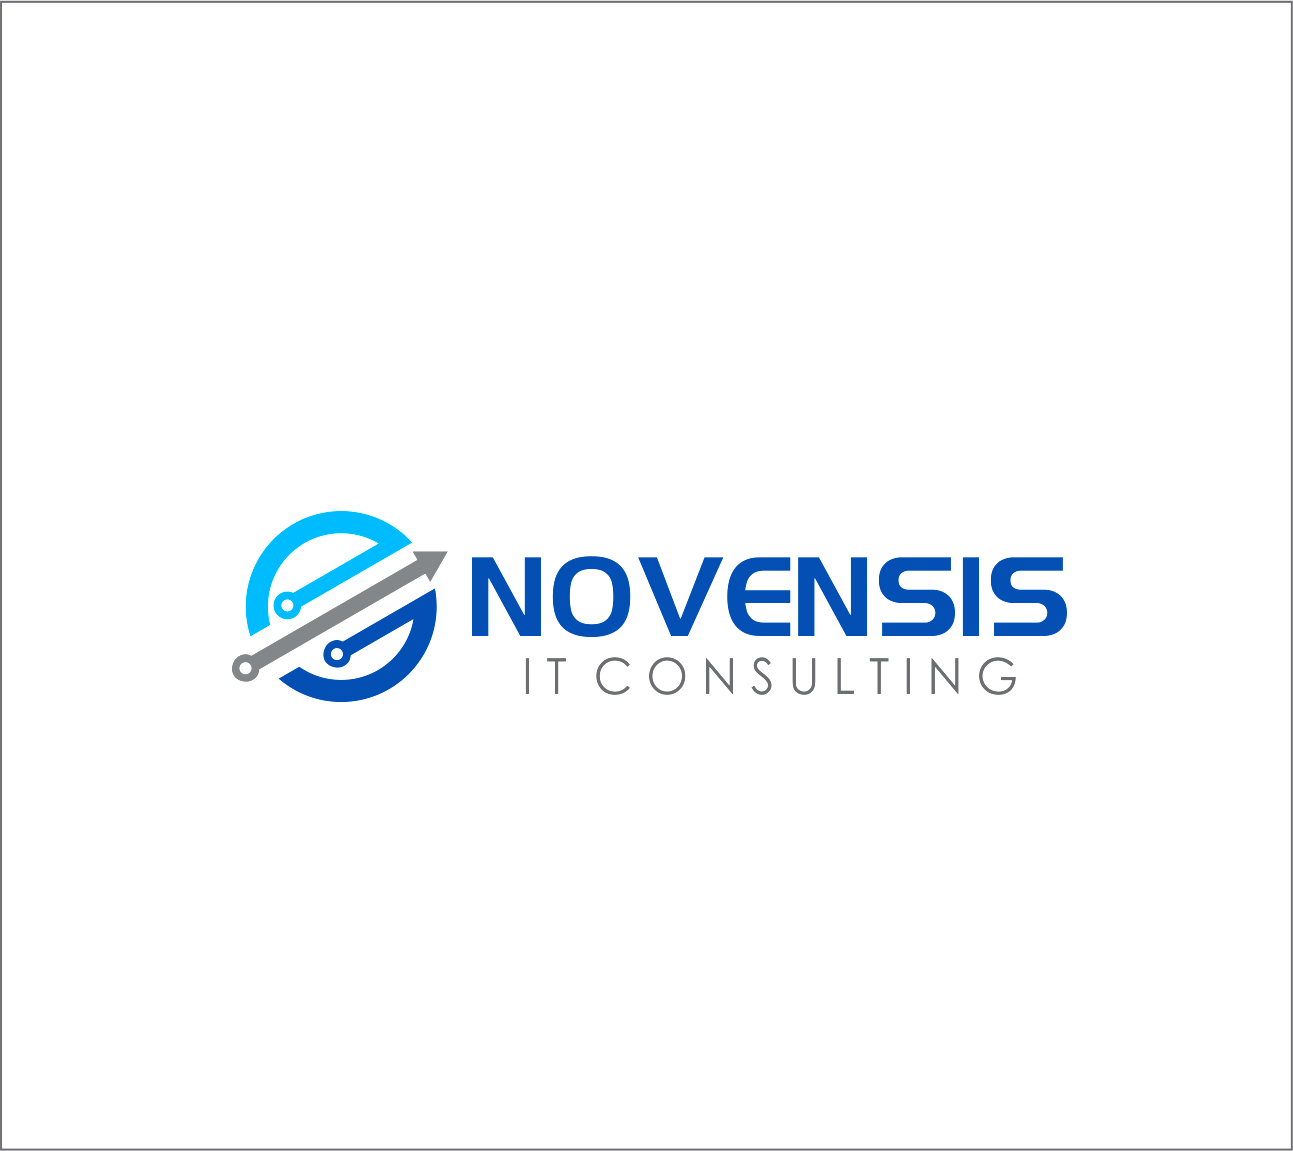 Logo Design by Armada Jamaluddin - Entry No. 137 in the Logo Design Contest Novensis Logo Design.